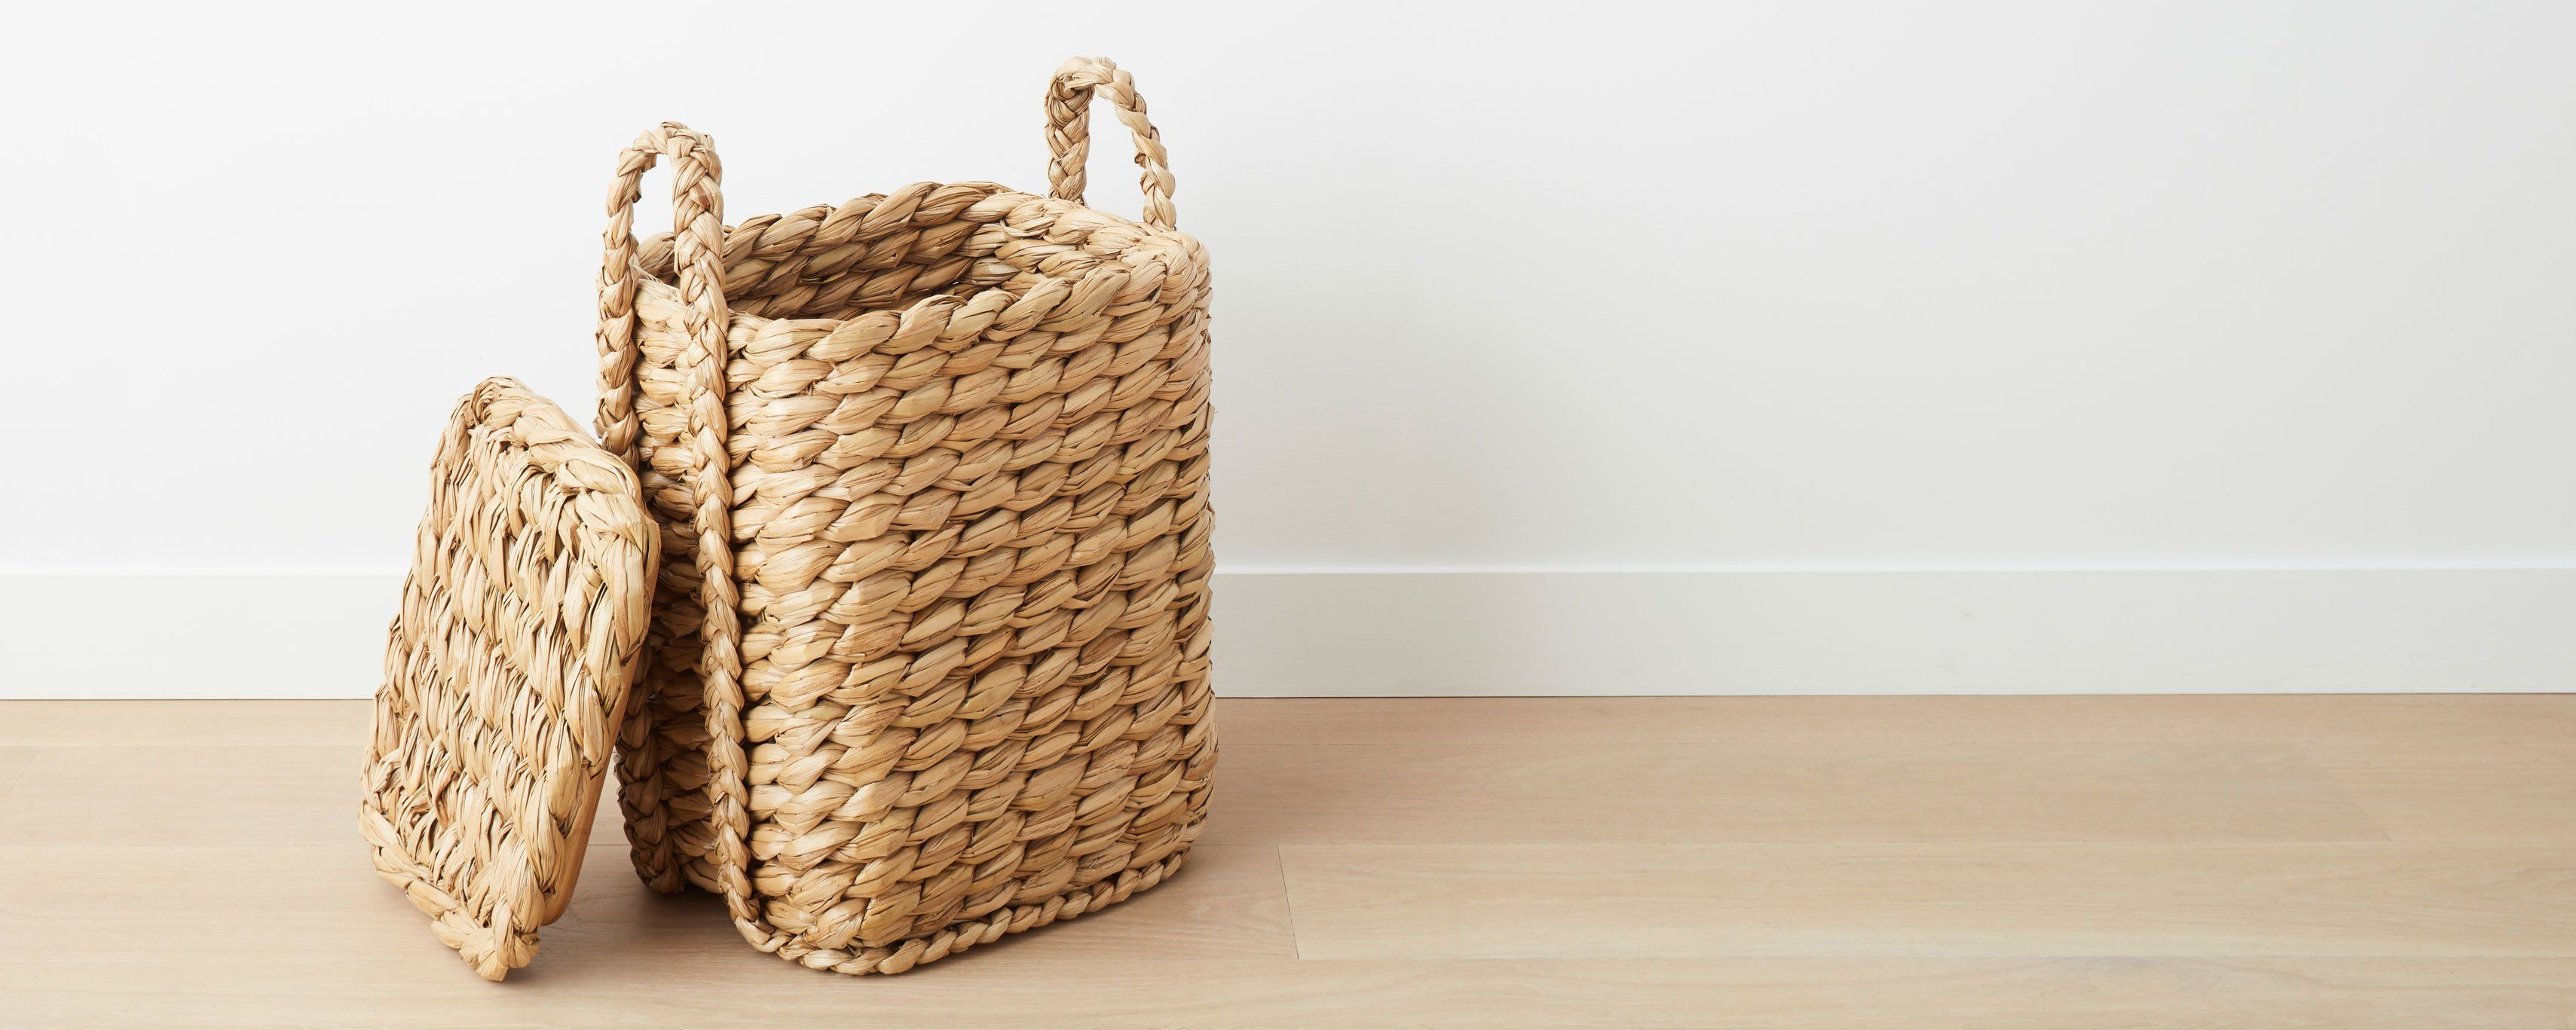 Woven seagrass hamper | Hamper, Bath products and Bathroom accessories